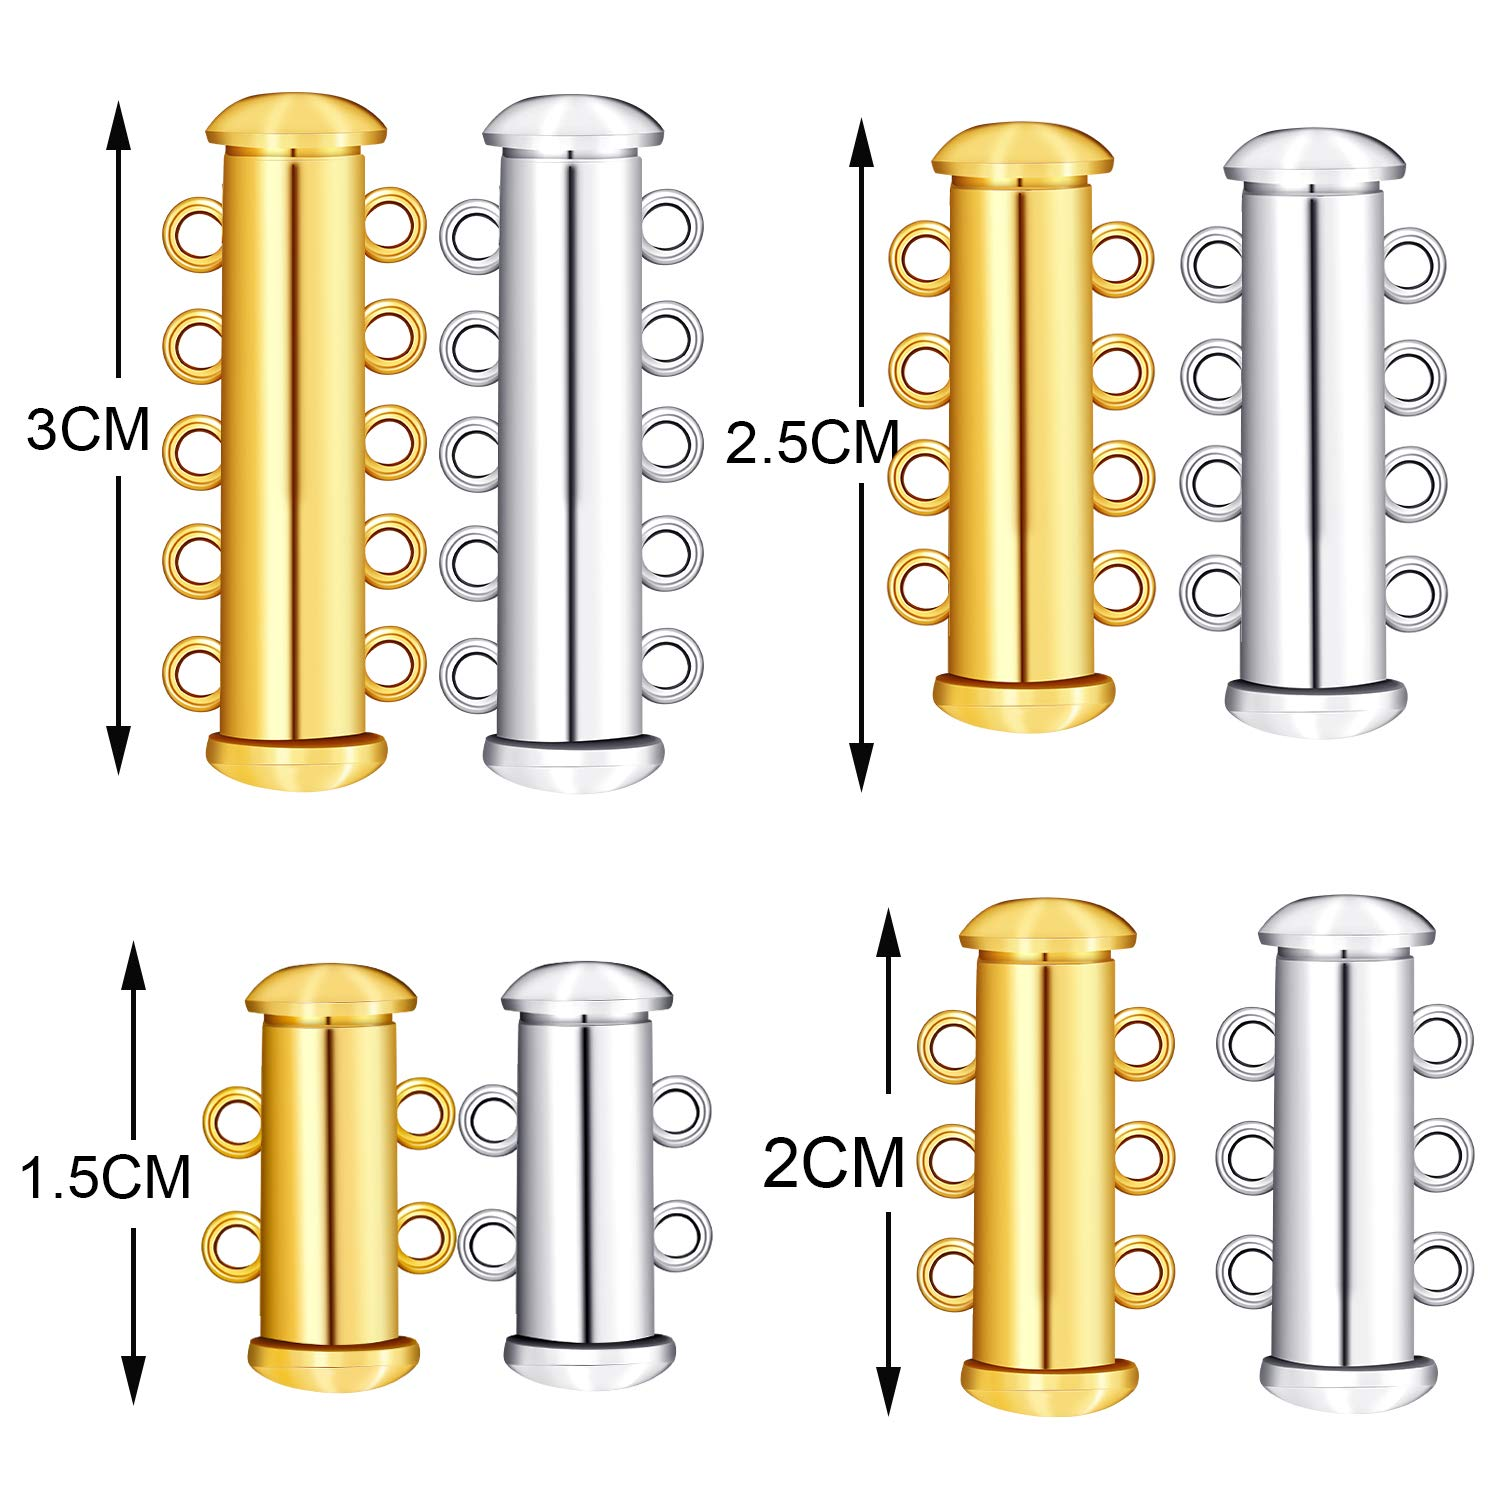 8 Pieces 4 Sizes Slide Clasp Lock Necklace Connector Multi Strands Slide Tube Clasps with Storage Box for Layered Bracelet Necklace Jewelry Crafts